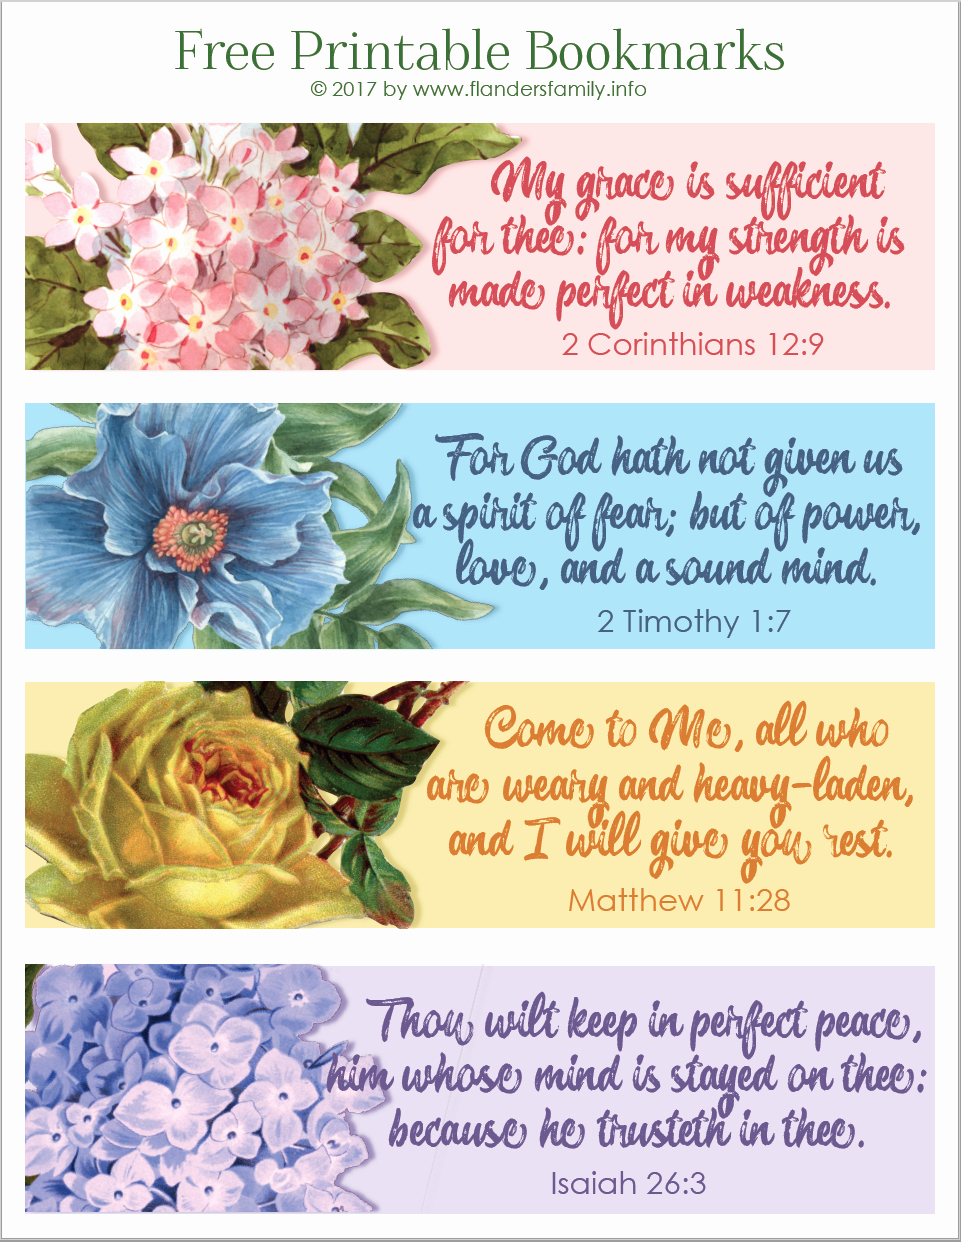 Free Printable Christian Bookmarks Inspirational Pretty Printable Scripture Bookmarks Flanders Family